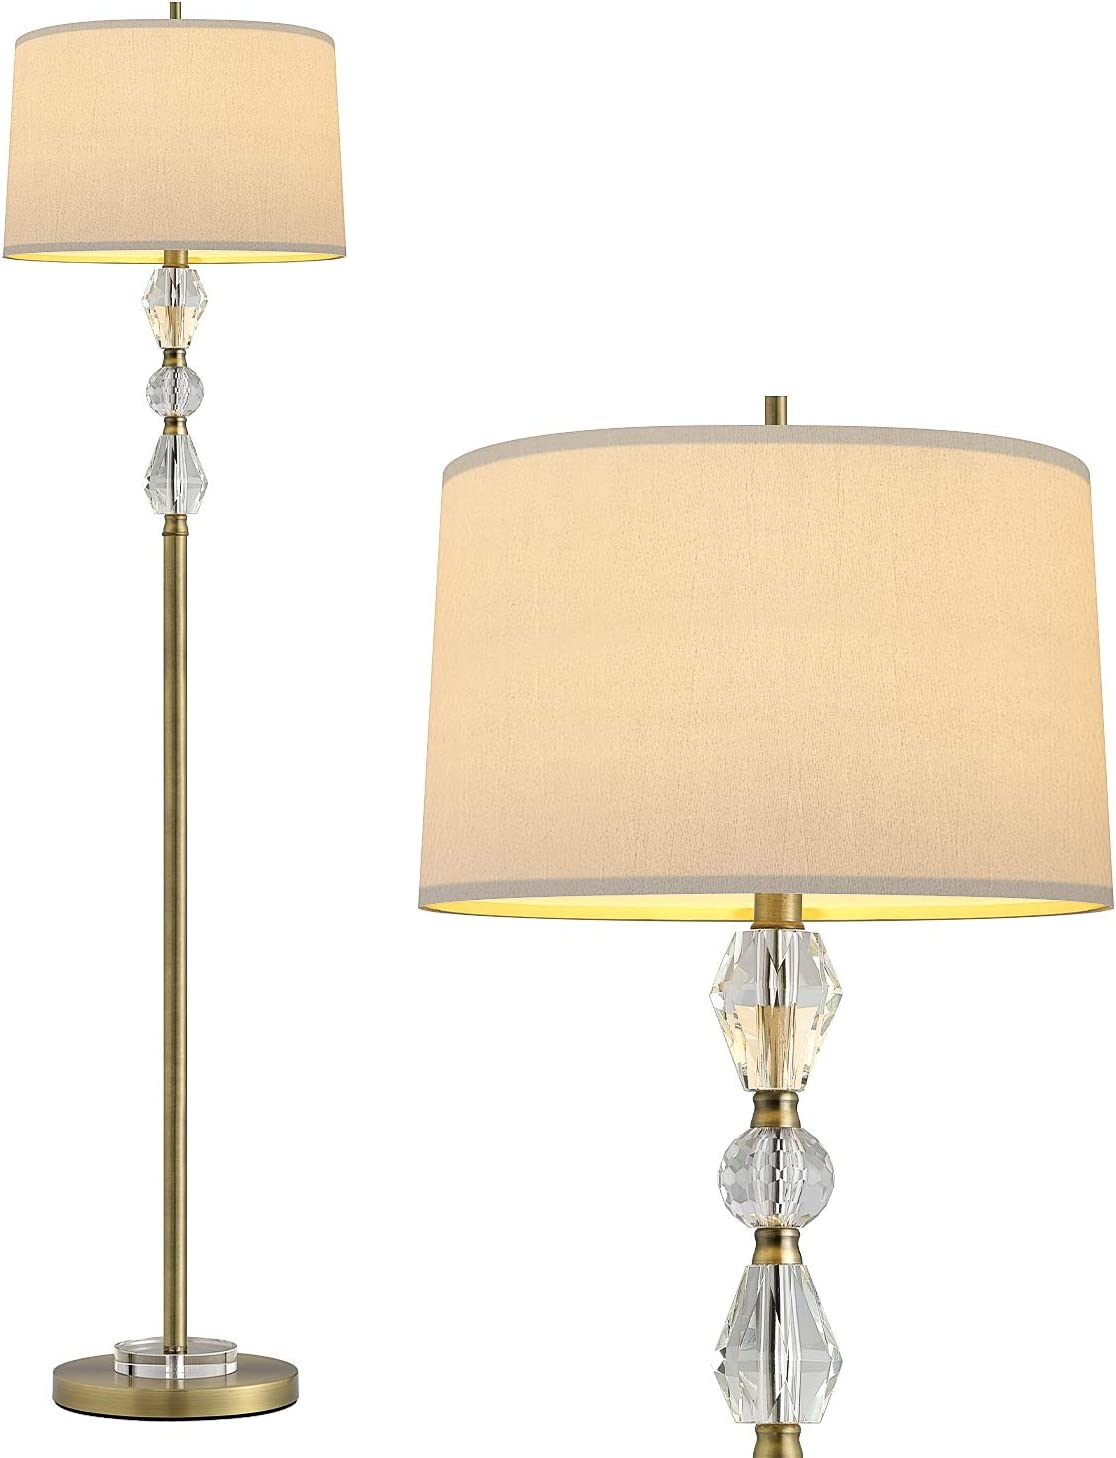 """OYEARS Floor Lamp for Living Room Modern 62"""" Crystal Stacked Ball Floor Lamp Bedroom Reading Antique Copper White Fabric Shade Gold"""